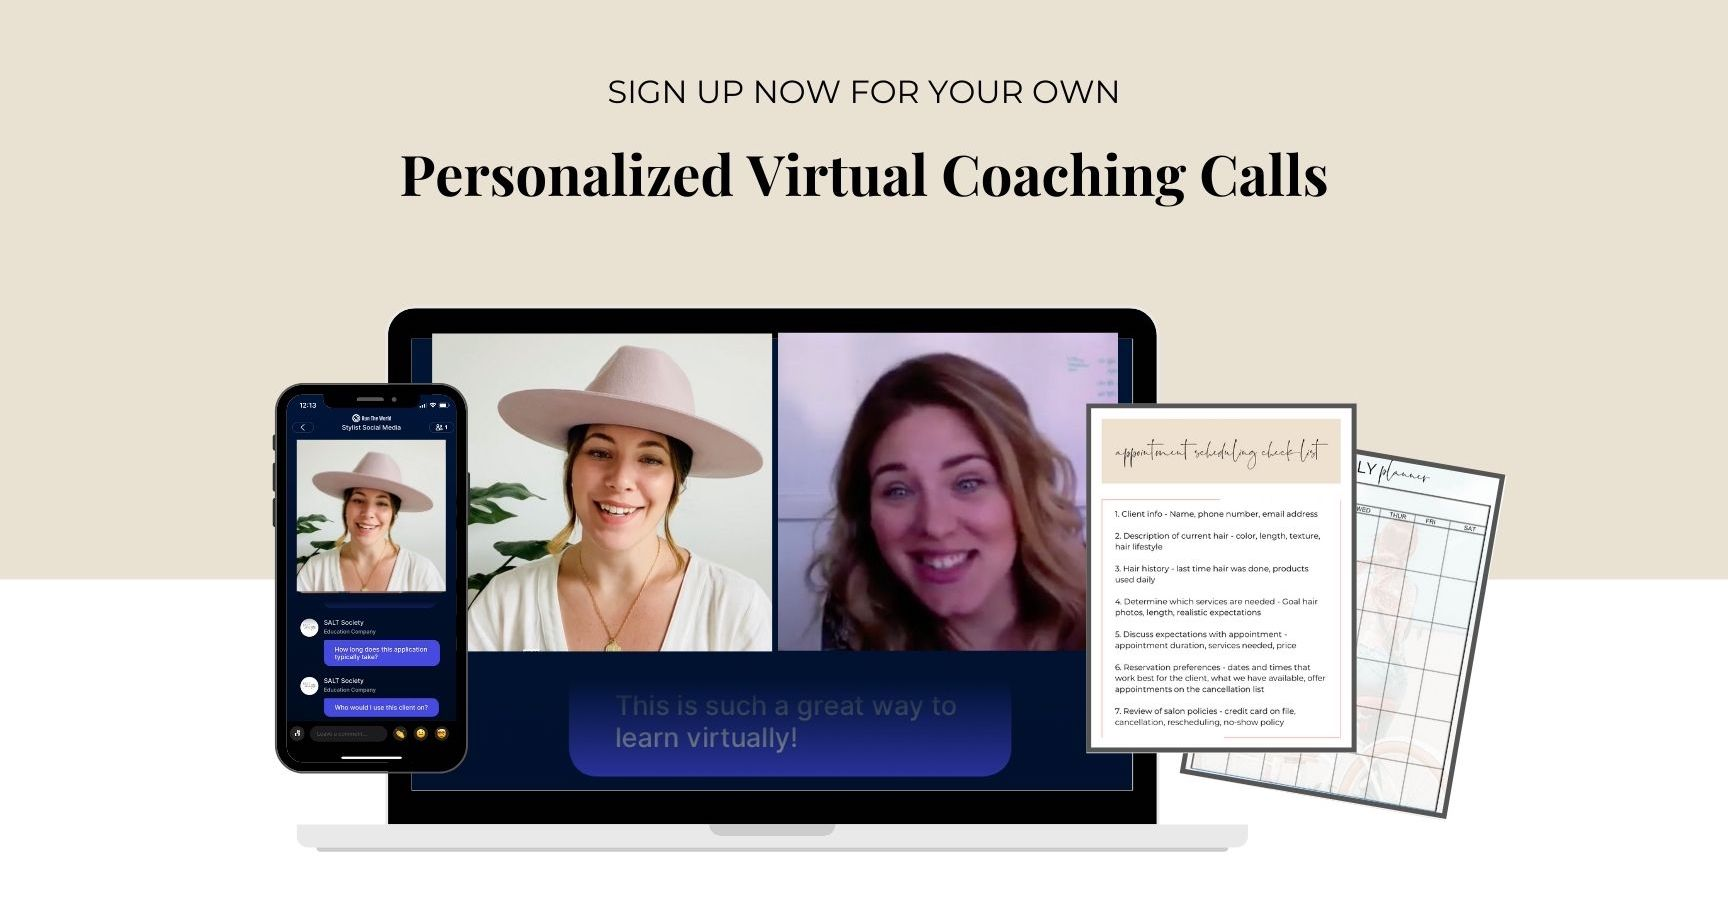 Personalized Coaching Calls